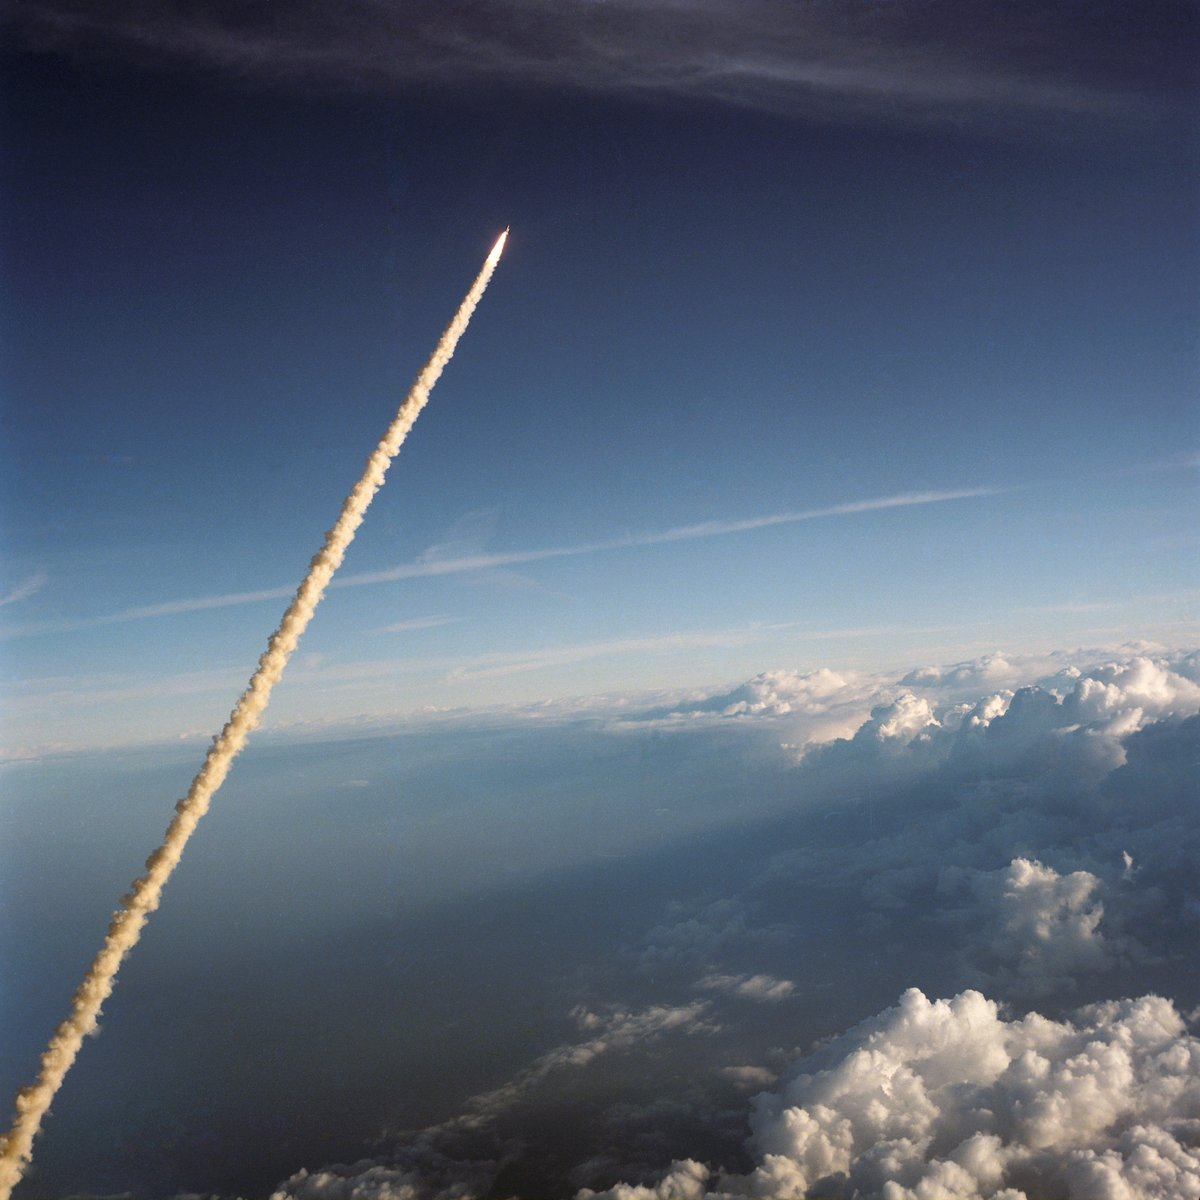 """""""We will never forget them, nor the last time we saw them, this morning, as they prepared for their journey and waved good-bye and 'slipped the surly bonds of earth' to 'touch the face of God."""" @nasa #challenger #STS51"""